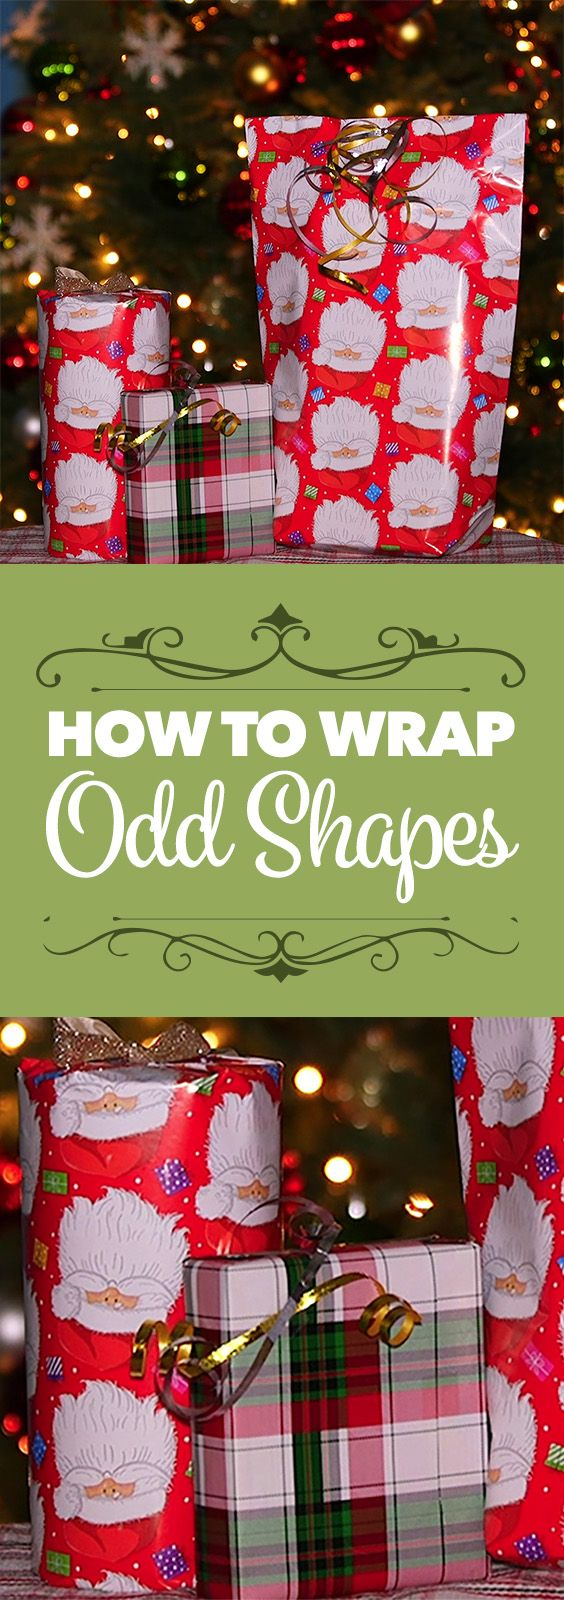 How to Wrap Odd Shapes | Christmas | Pinterest | Xmas crafts, Glass ...